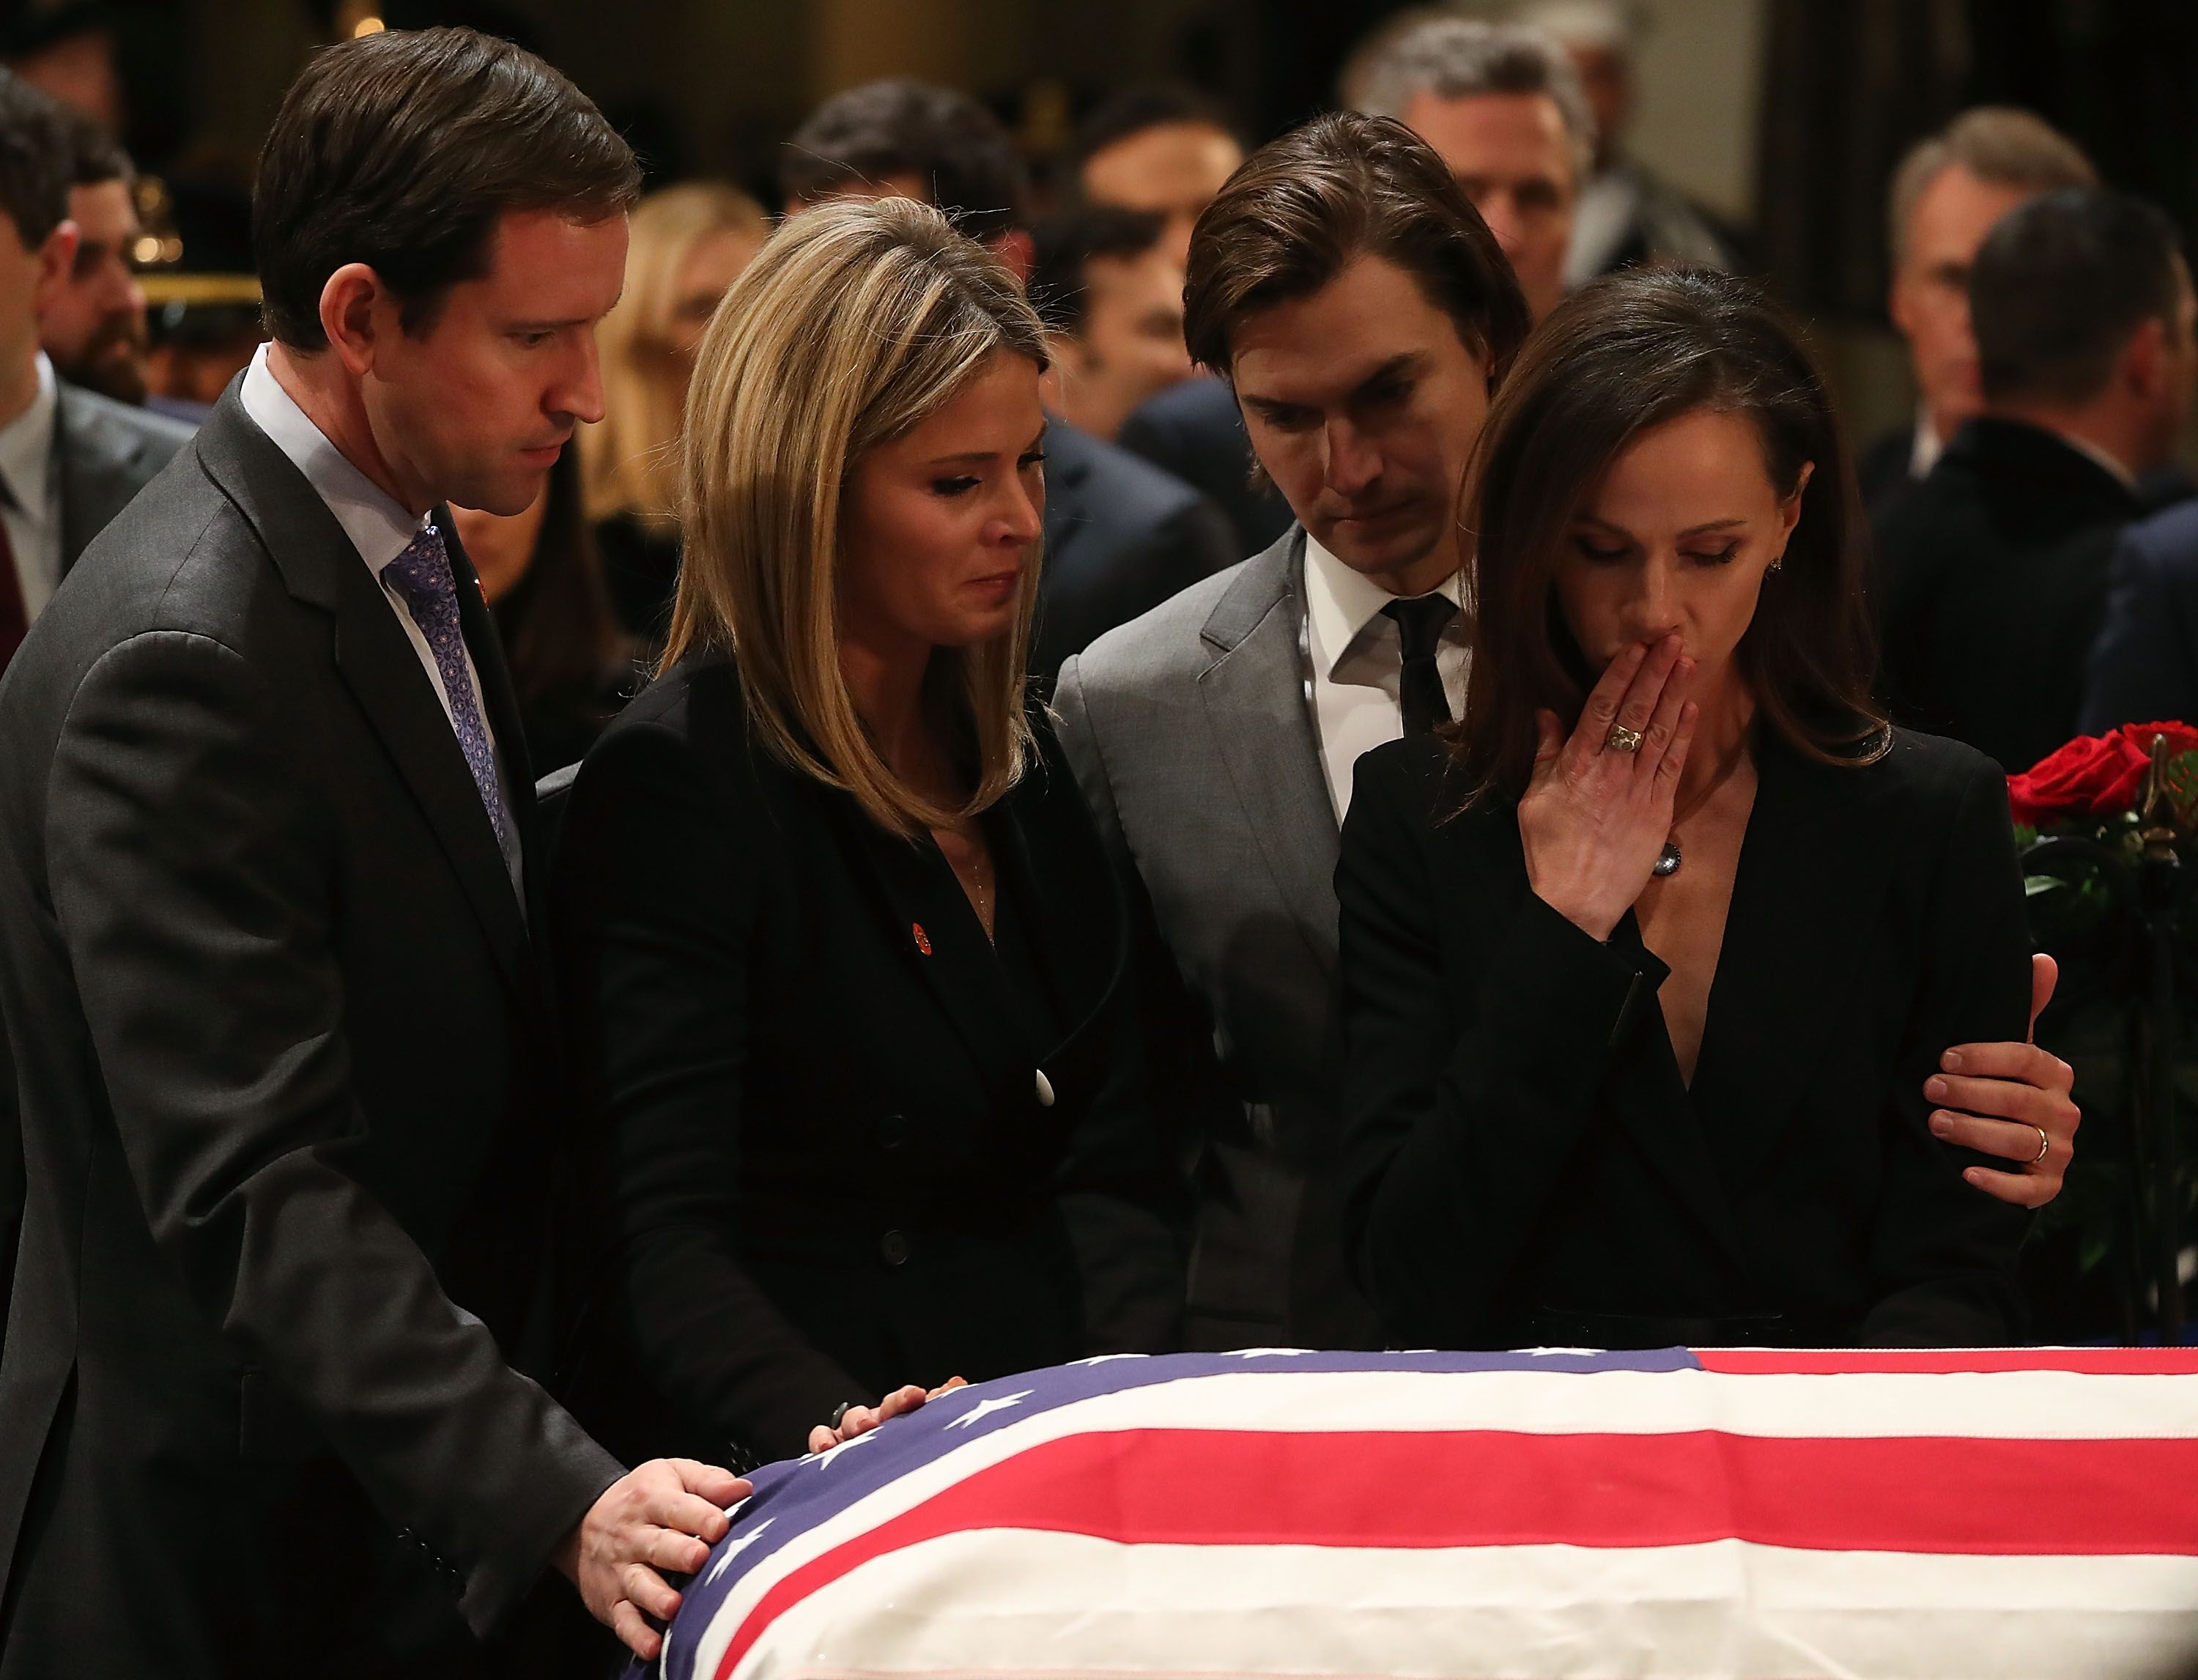 Jenna Bush Hager, her sister Barbara Pierce Bush, and their husbands pay their respects as George H.W. Bush's remains lie in state at the U.S. Capitol.